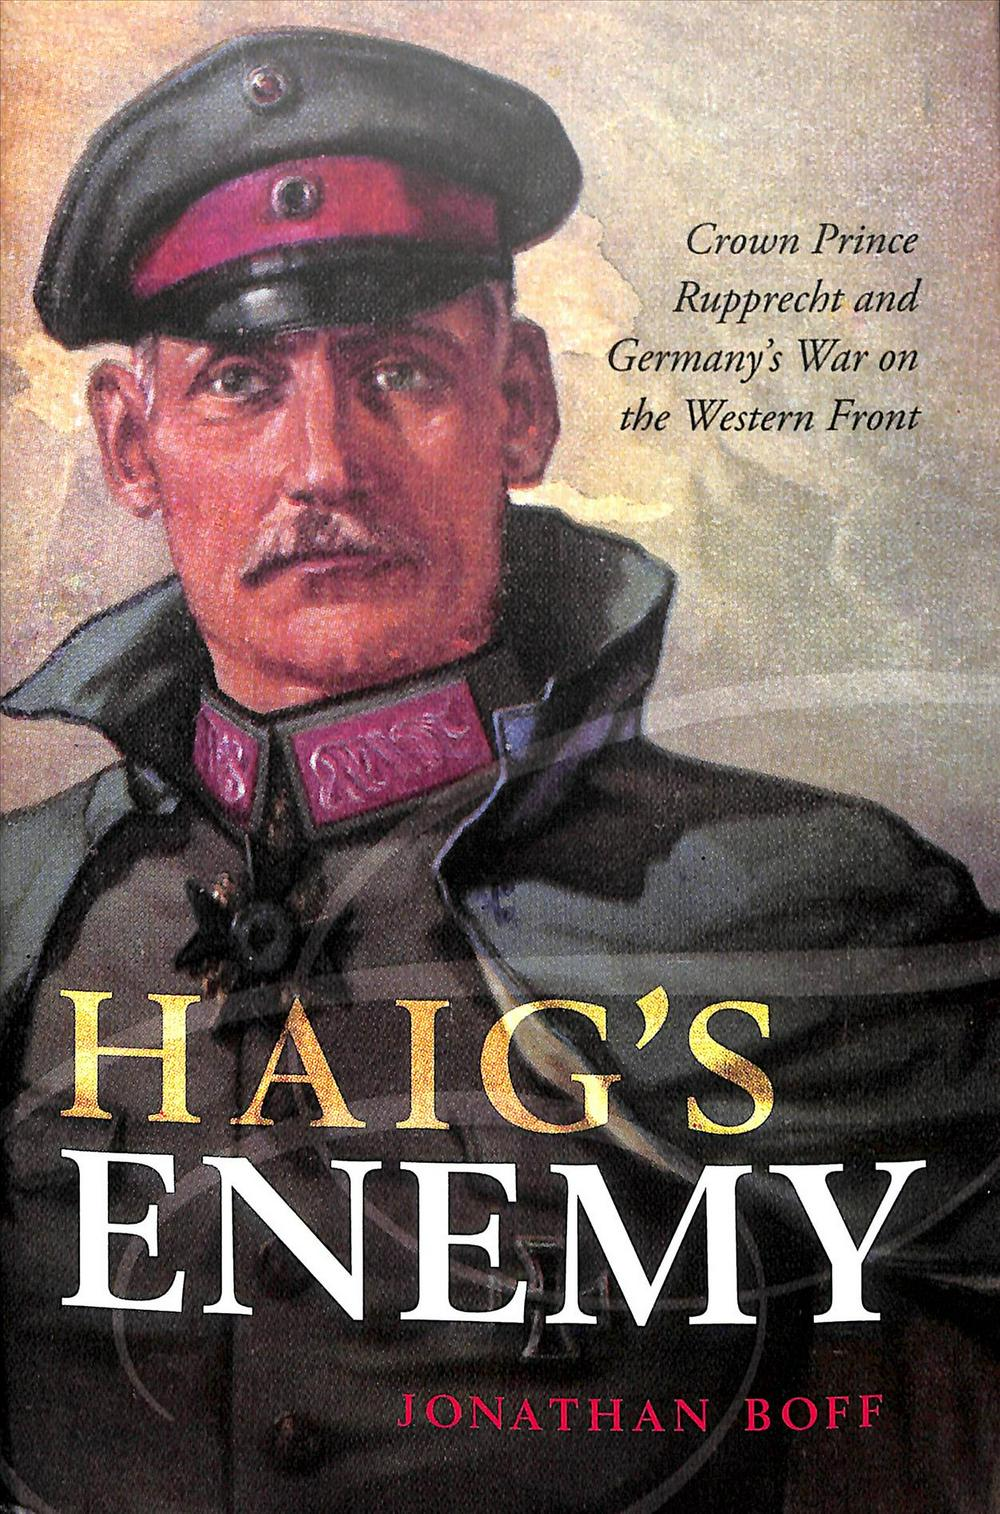 Haig's Enemy: Crown Prince Rupprecht and Germany's War on the Western Front by Jonathan Boff, ISBN: 9780199670468